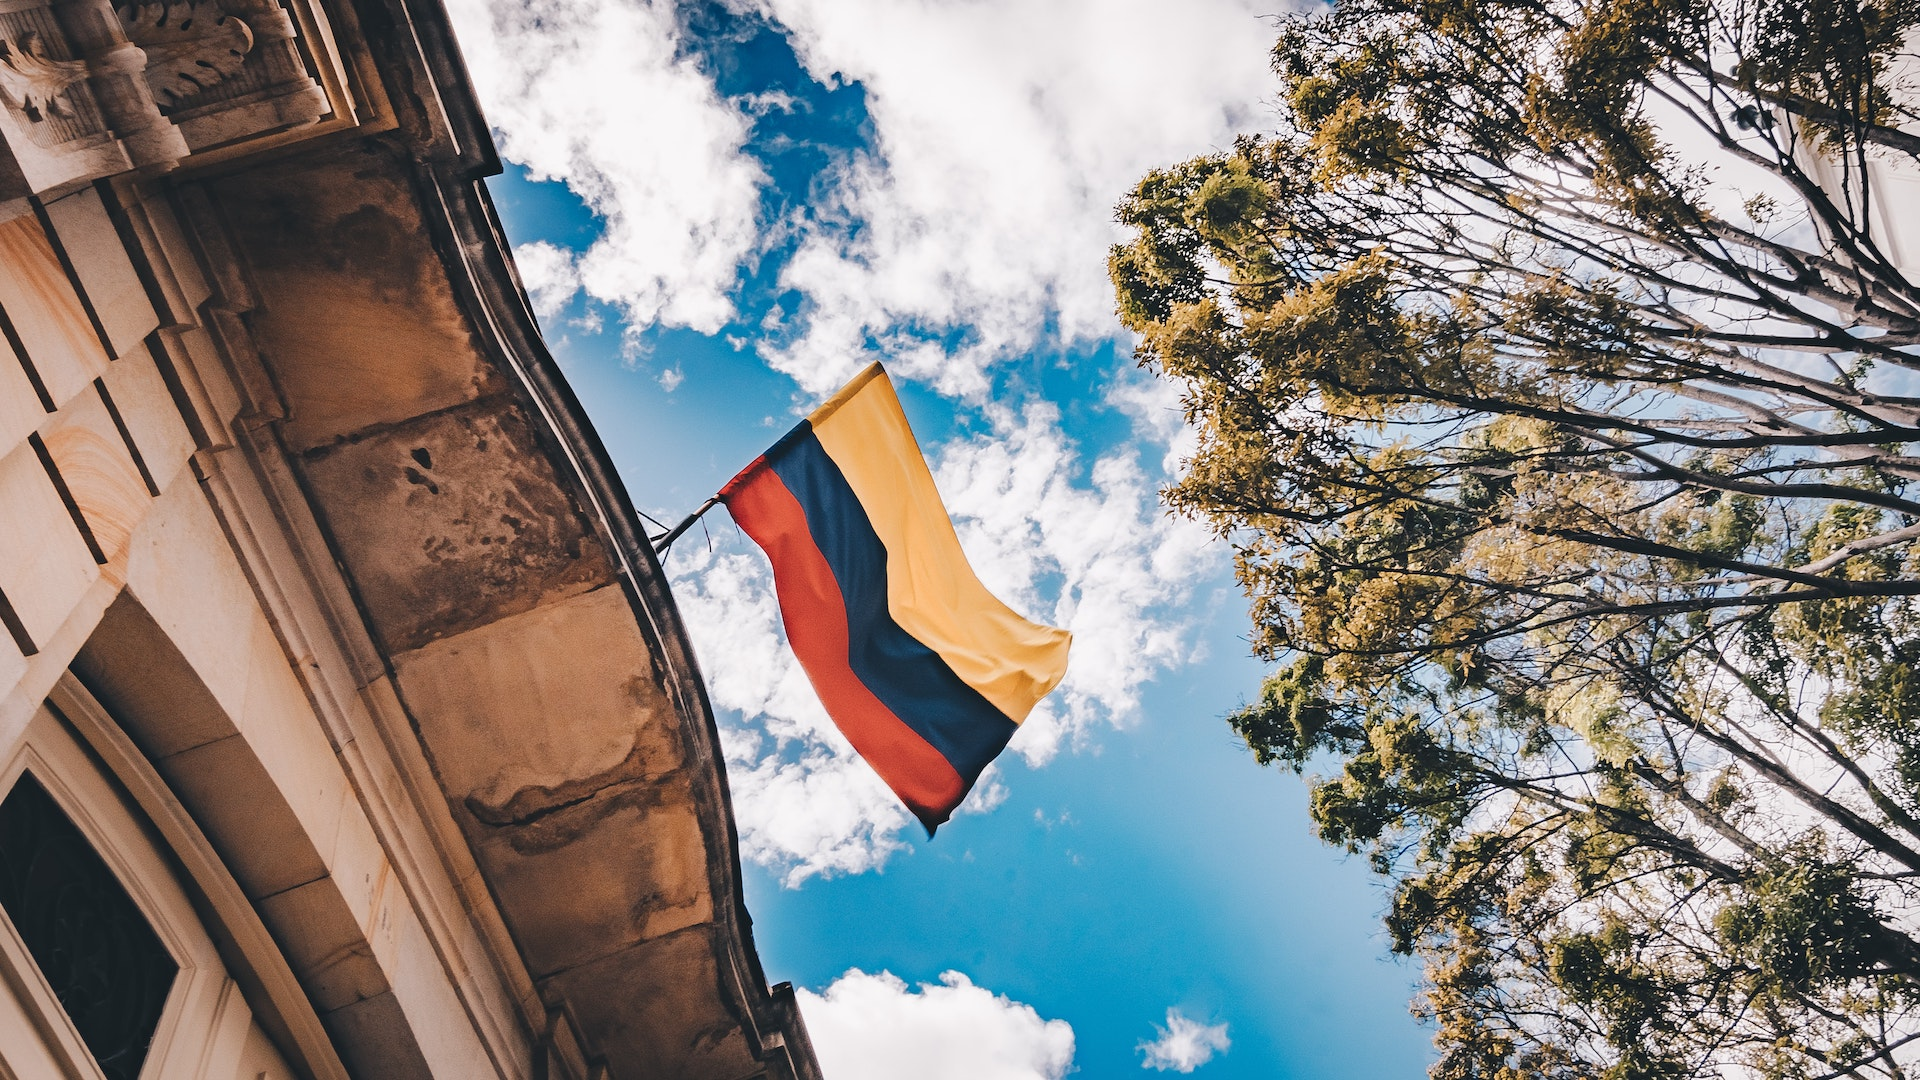 ADVENTURE IN COLOMBIA